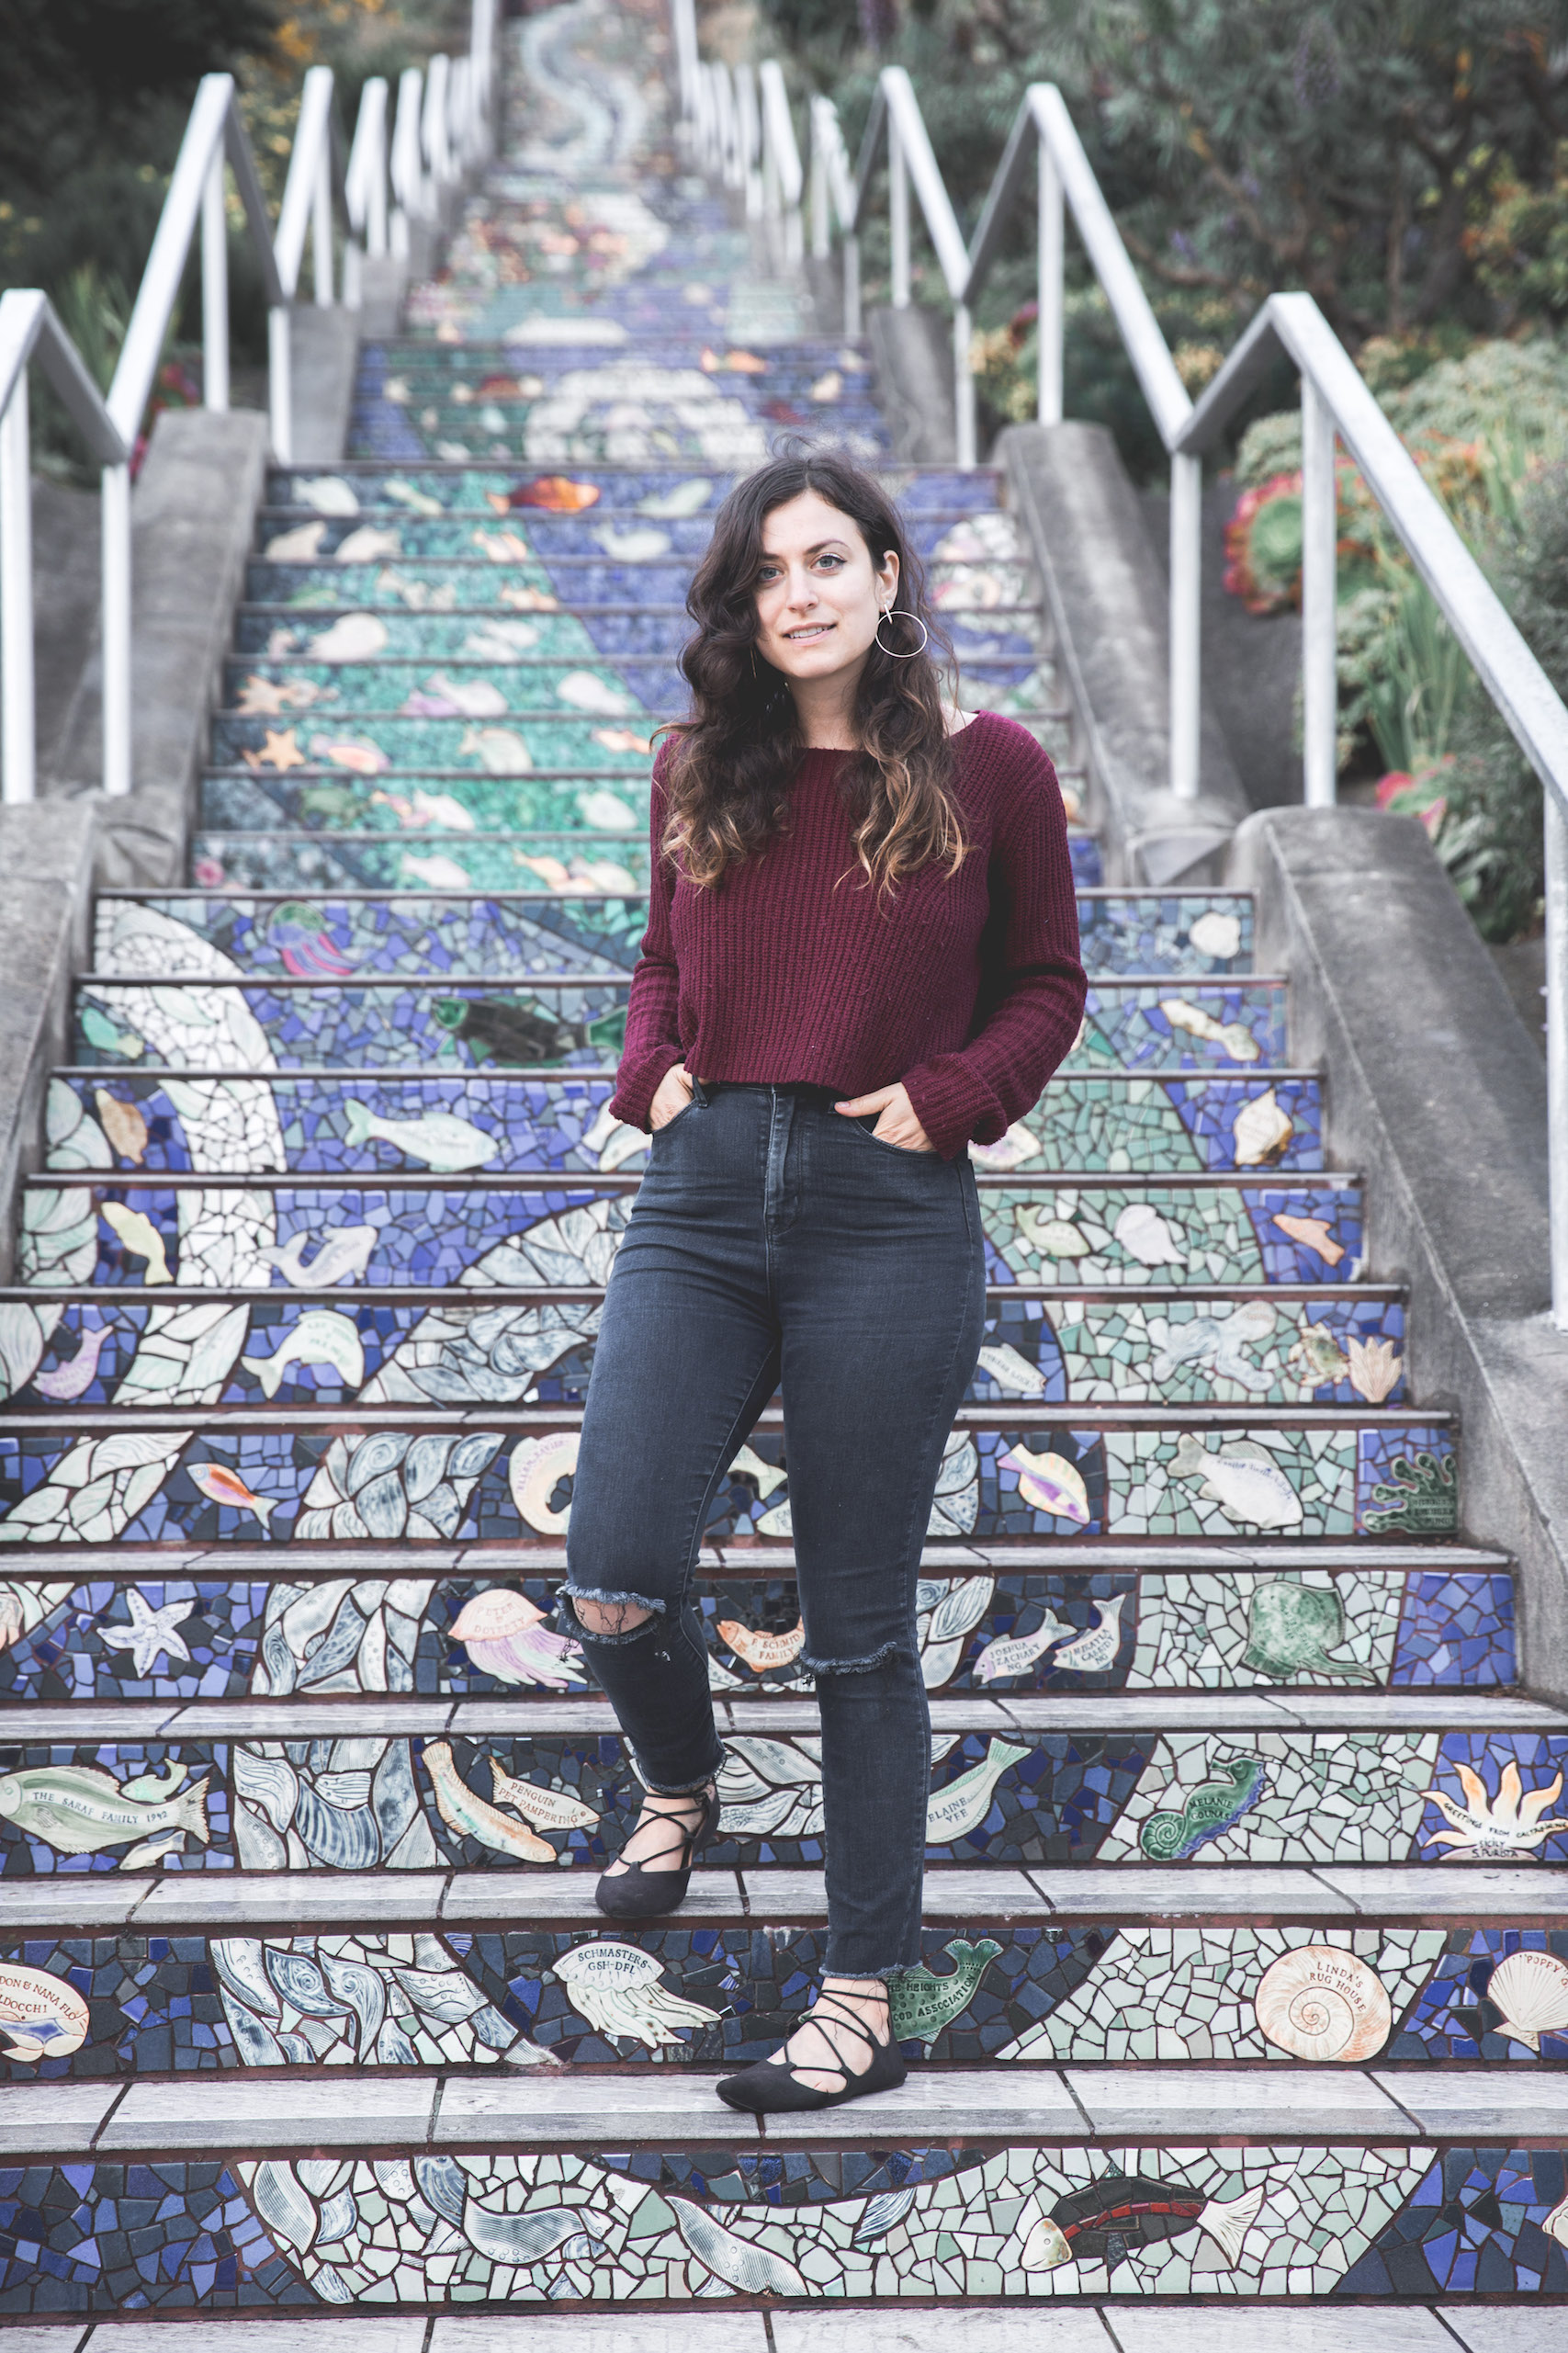 Kelsey standing on the 16th Avenue Tiled Steps in the San Francisco Bay Area